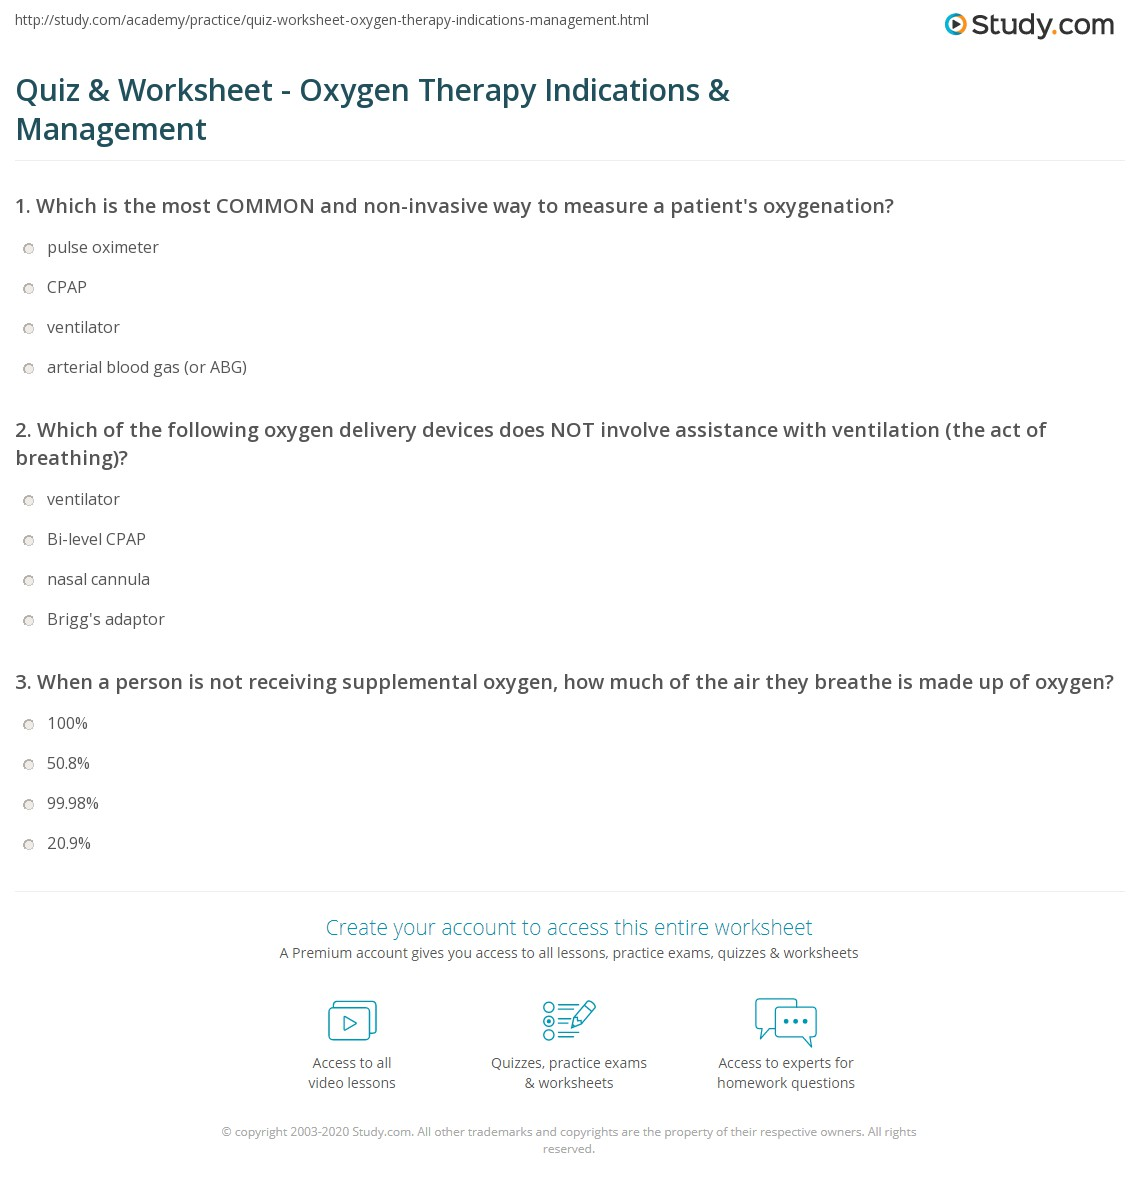 Quiz & Worksheet - Oxygen Therapy Indications & Management